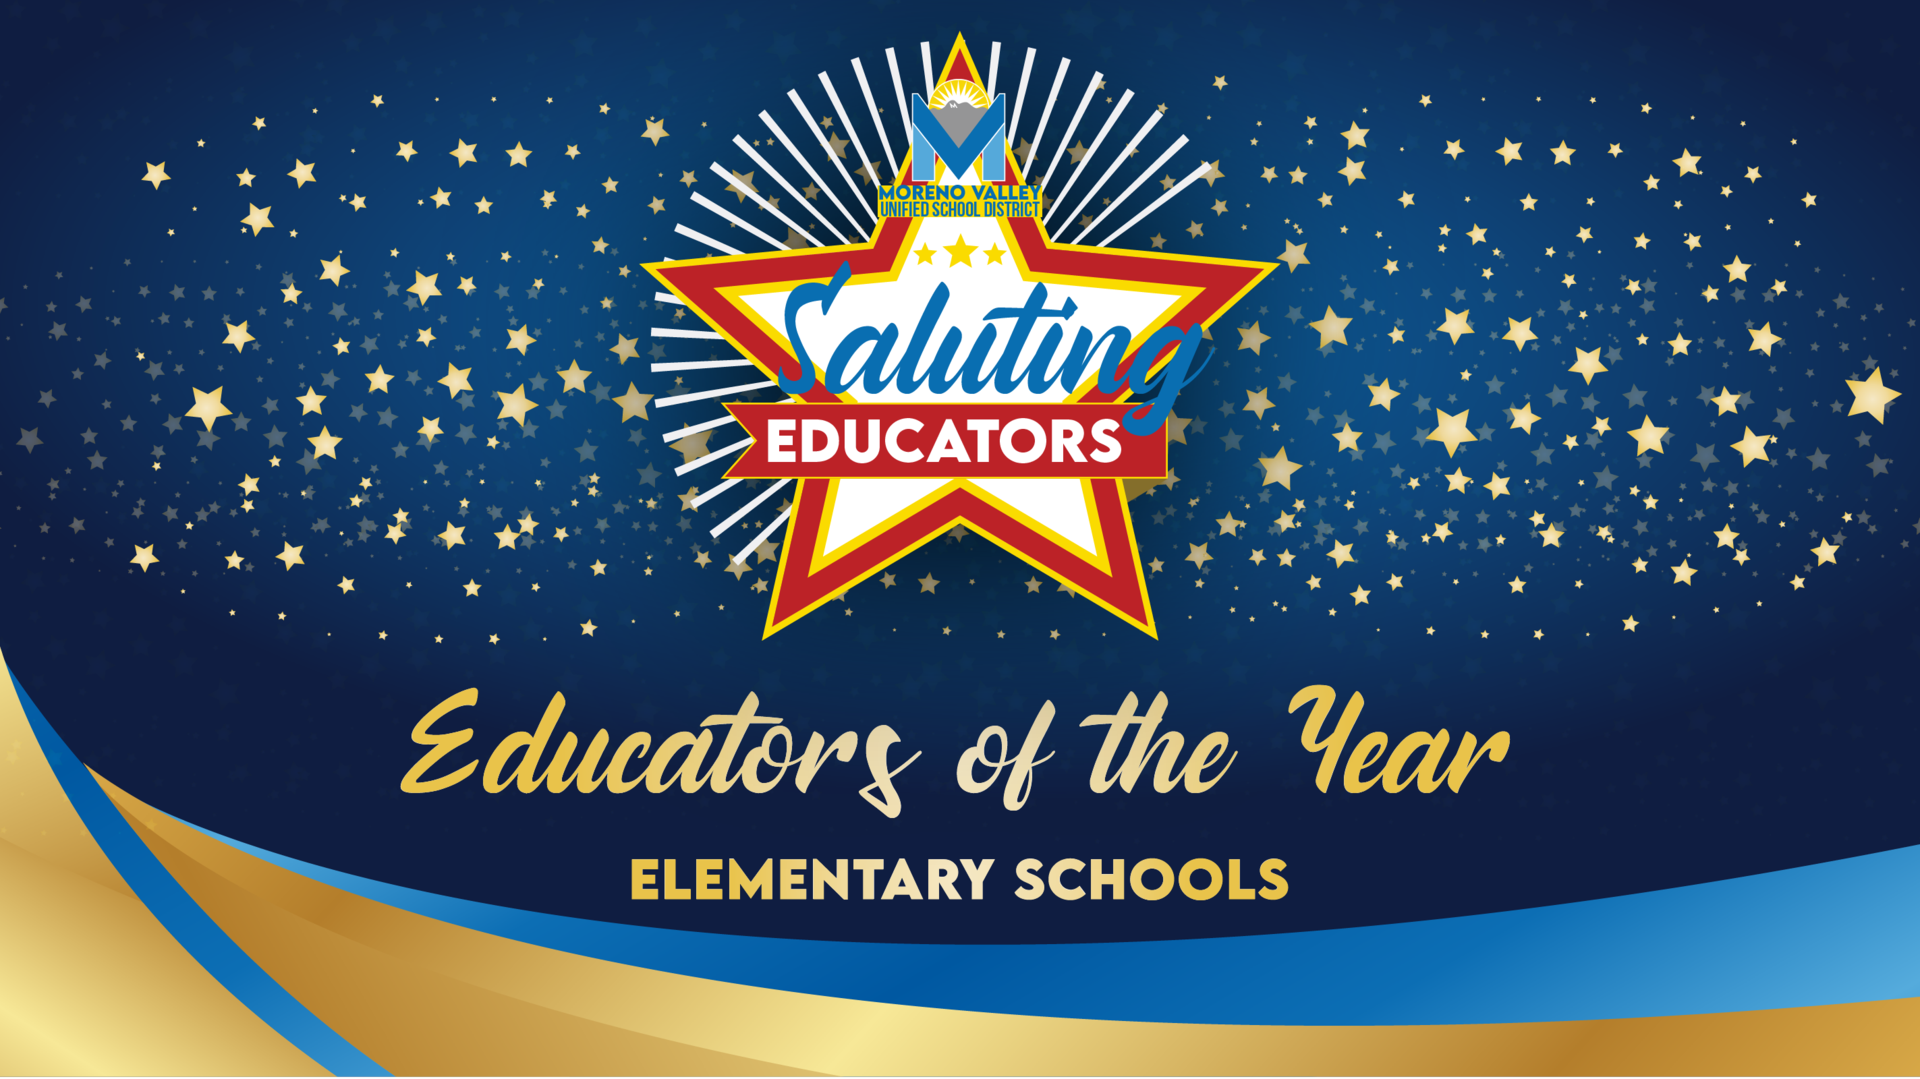 Click here for Elementary School Employees of the Year